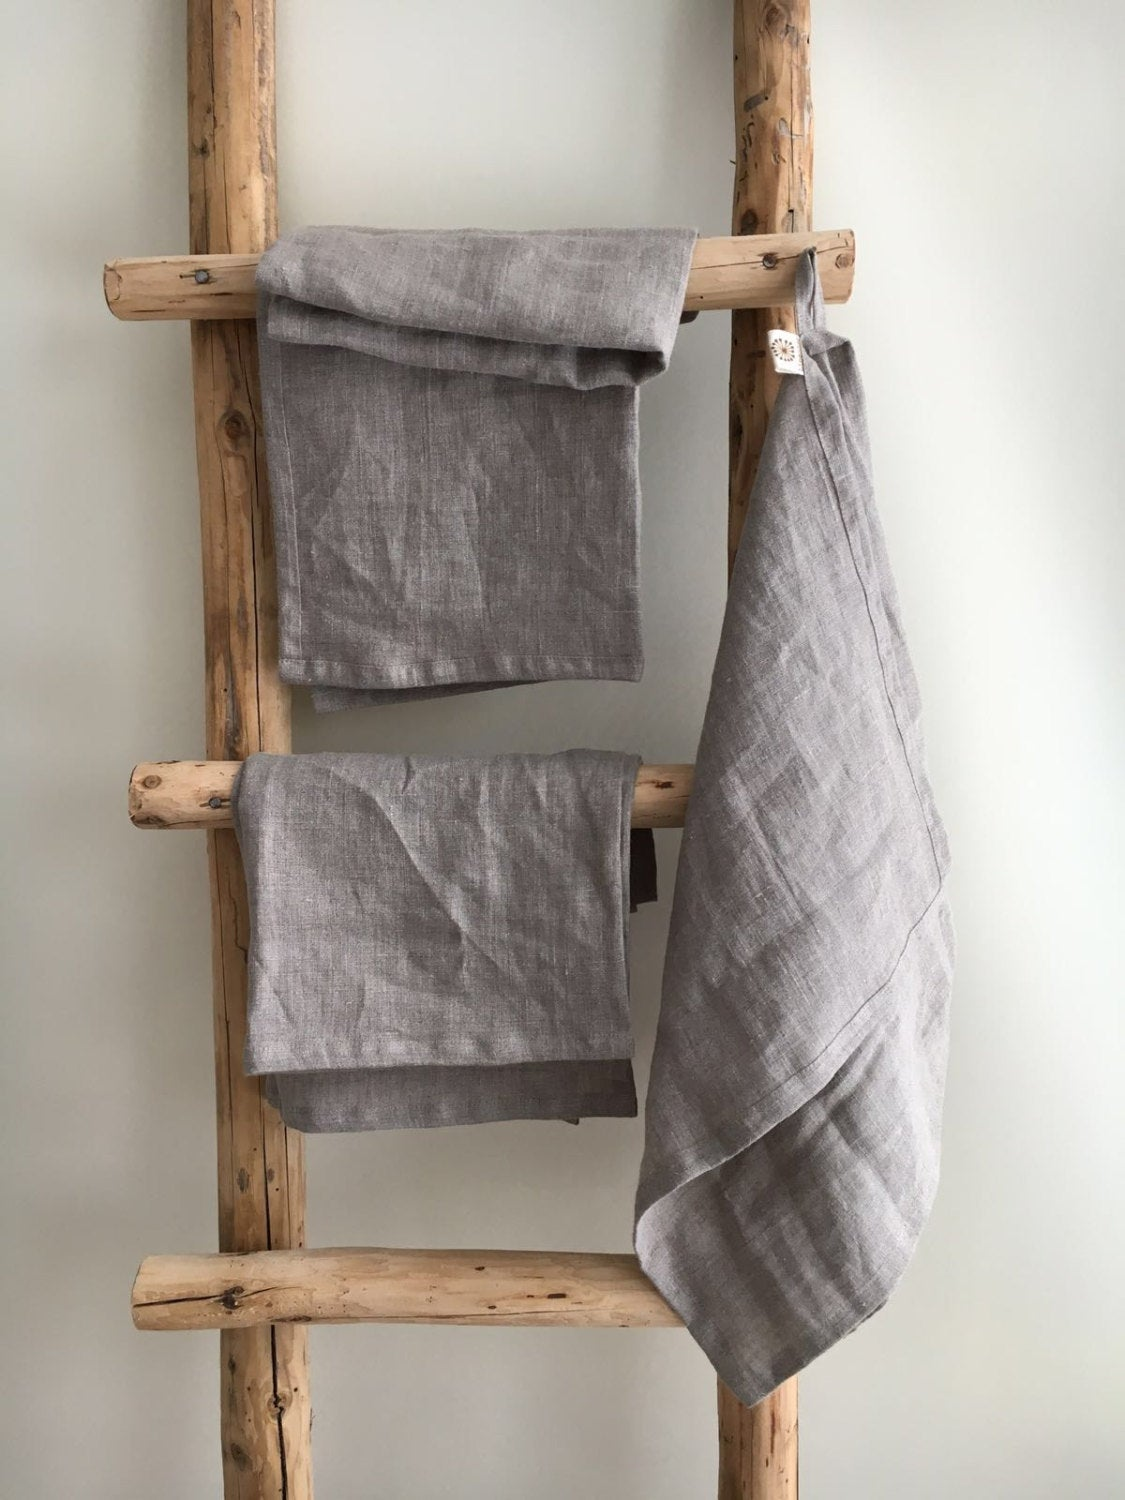 Set of four Durable Kitchen Towels, Thick Dish Towels, Rustic towels, linen towels, guest towels, natural towels, tea towels